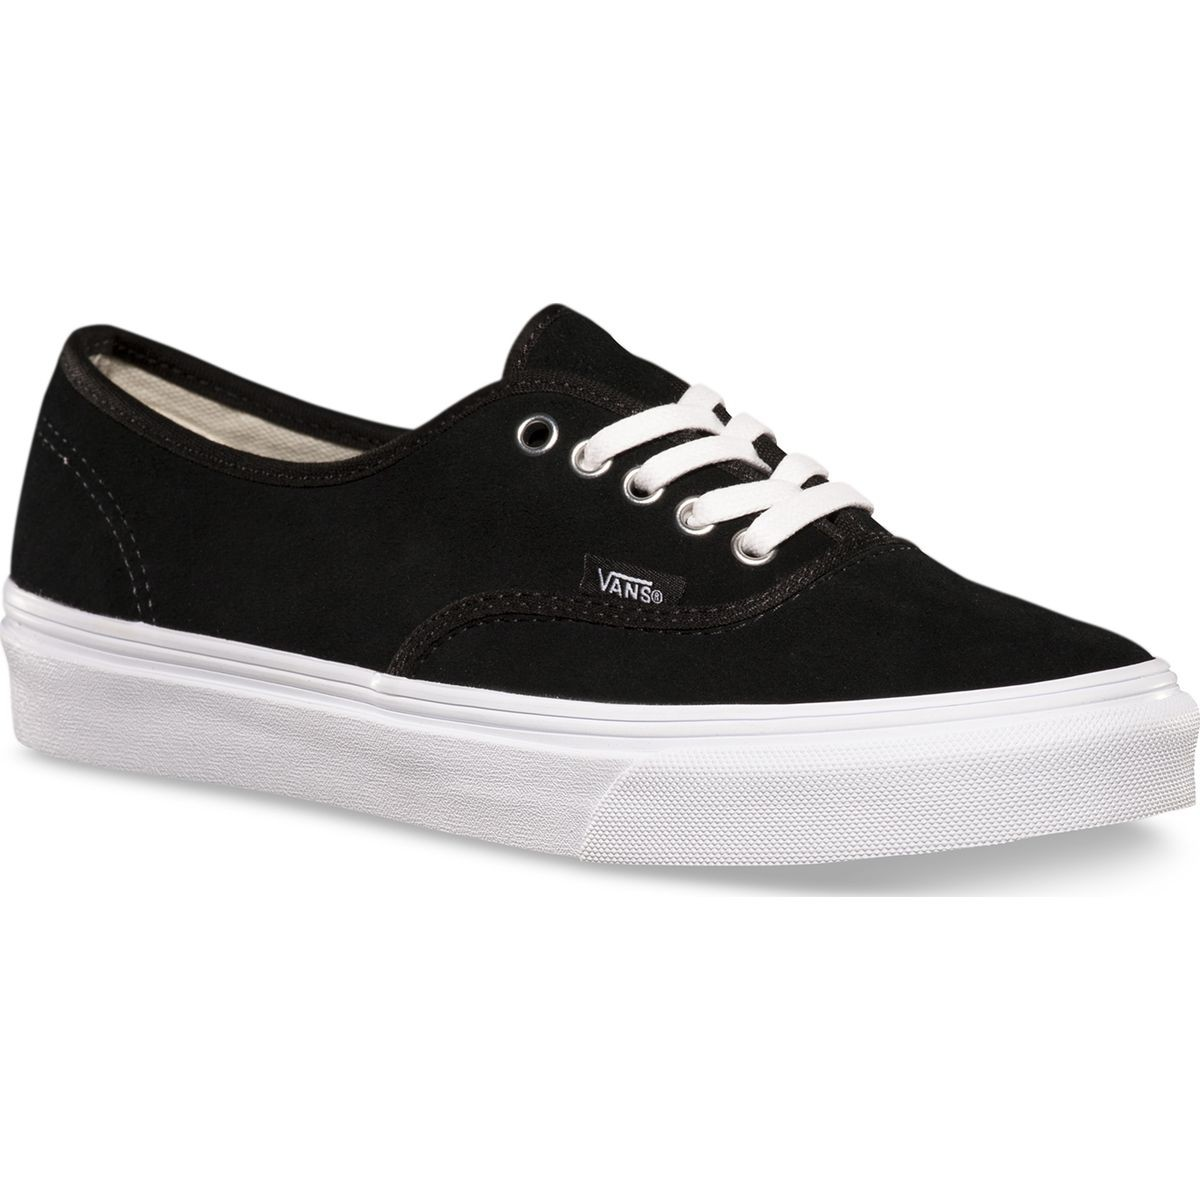 Vans Authentic Slim Womens Shoes - Black Suede